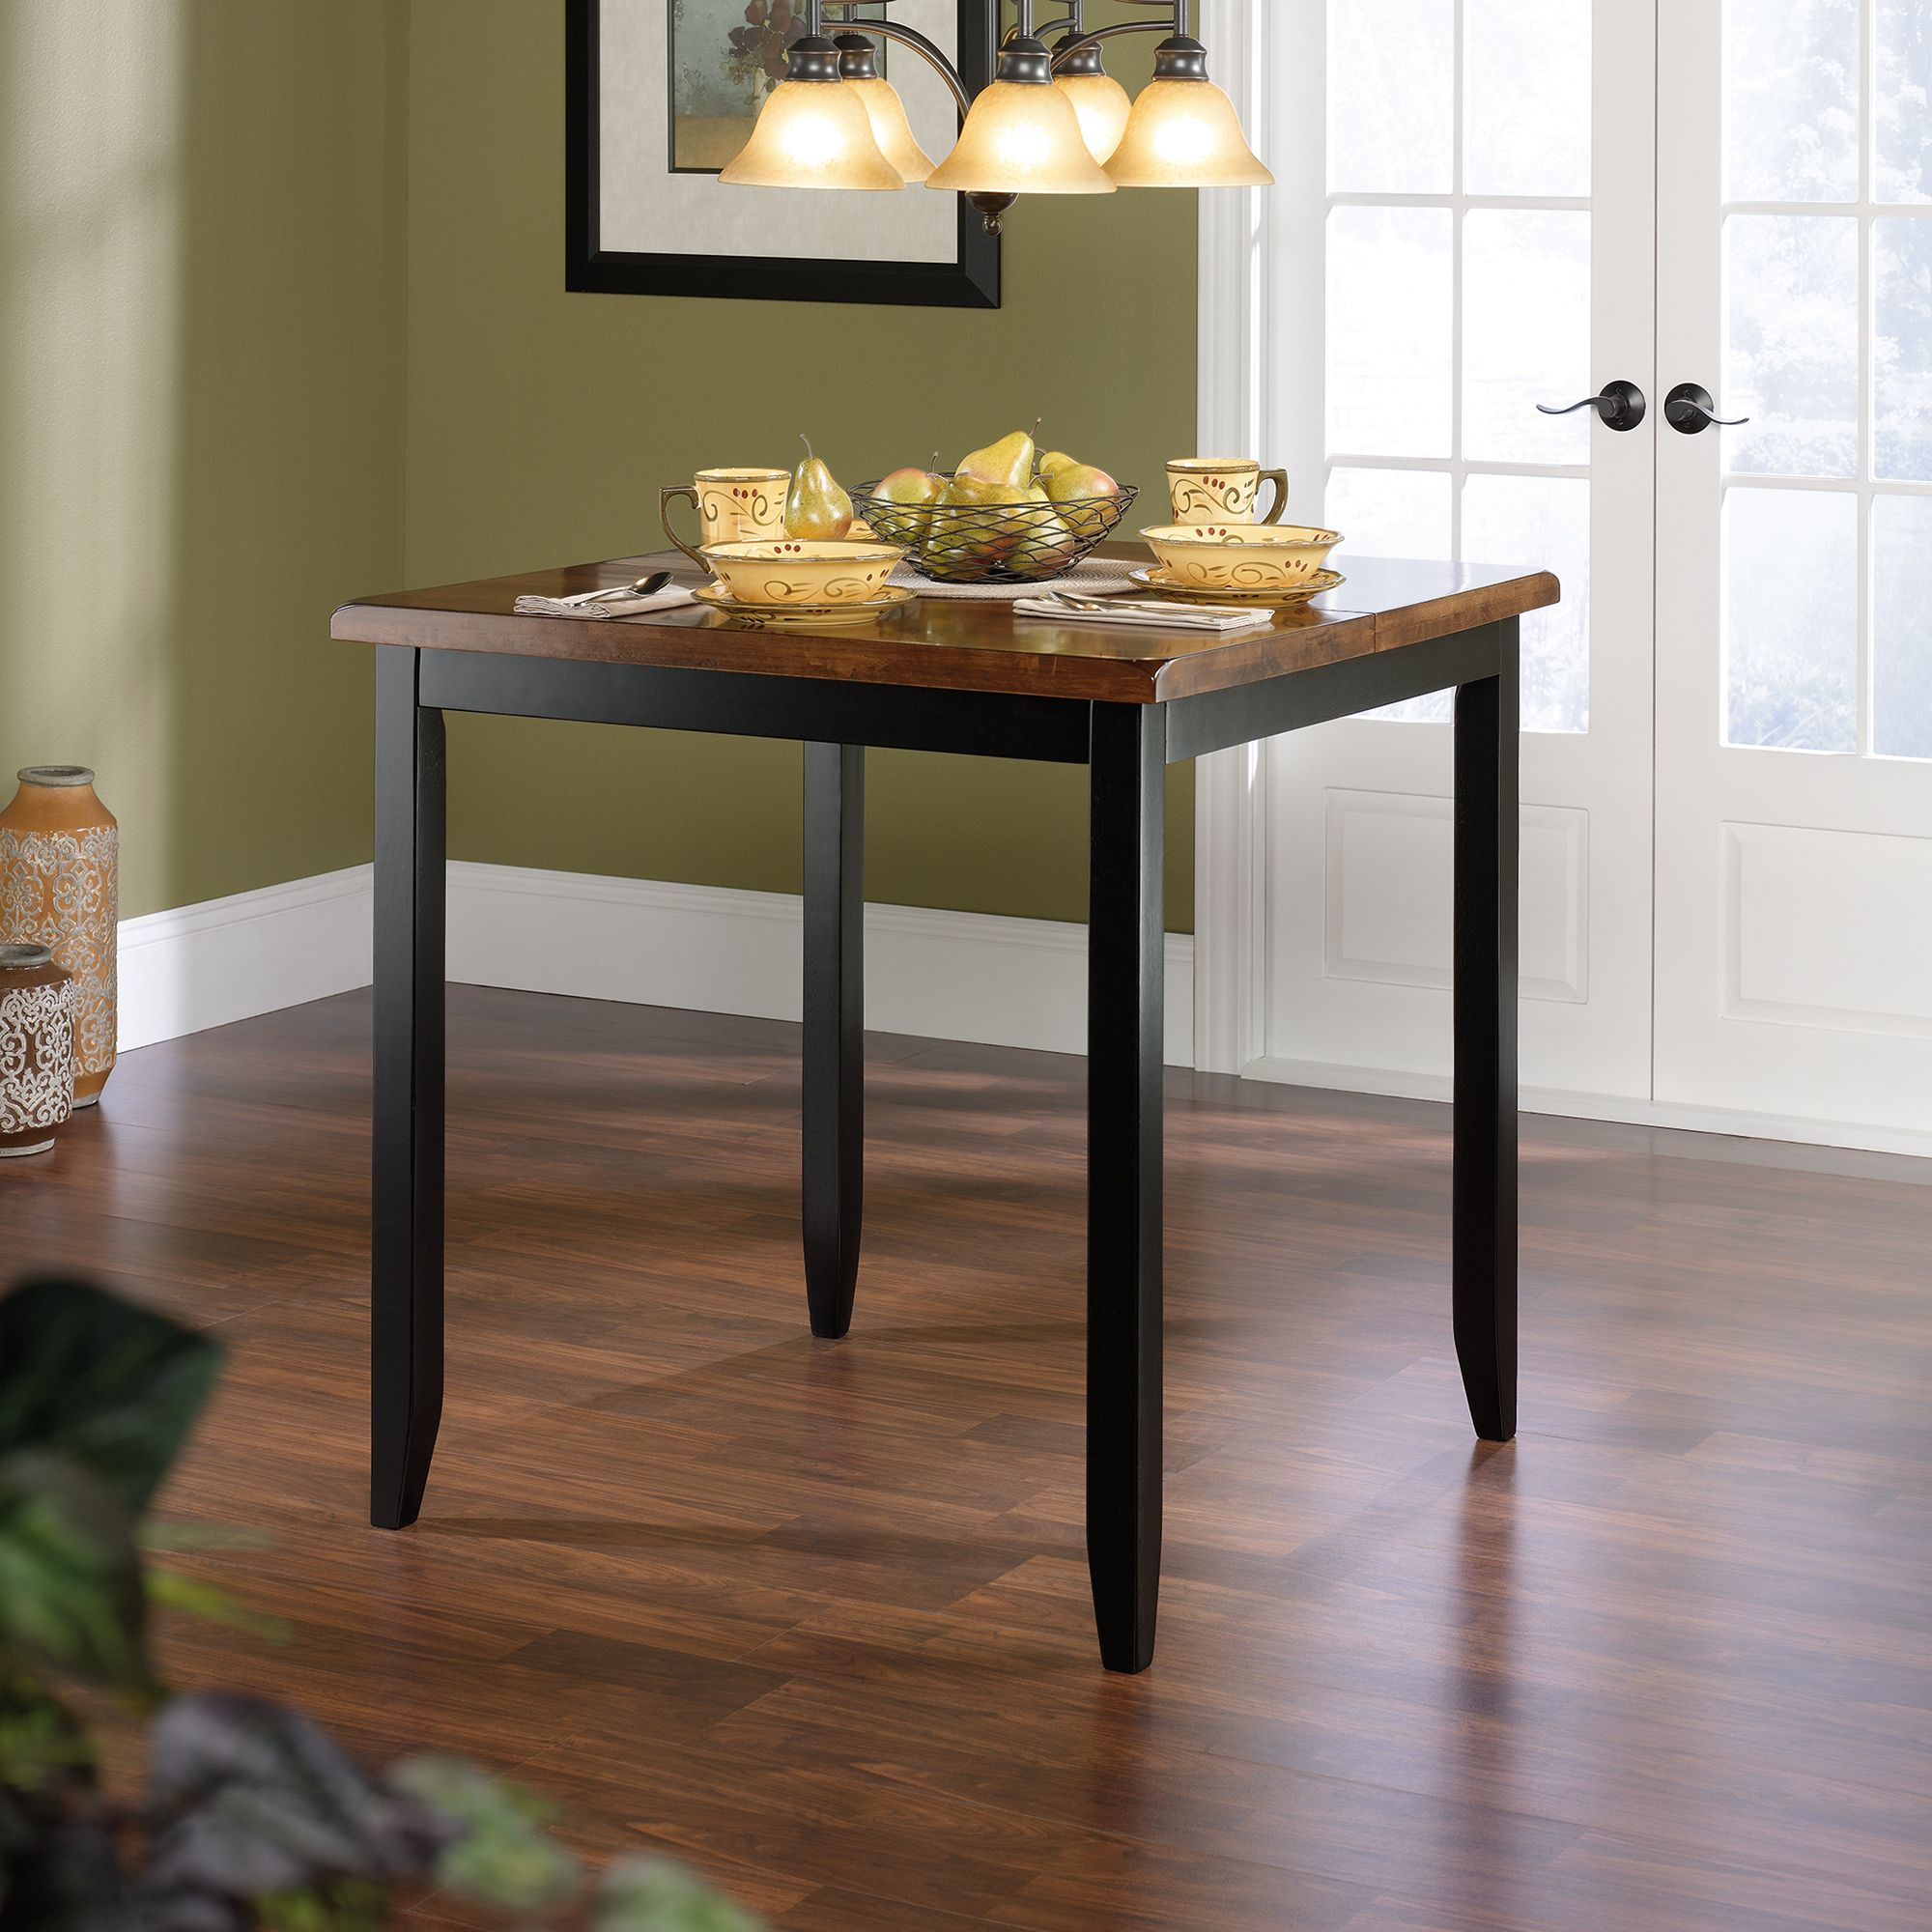 Shop For Casual Tables Dining ,, Furniture , At Big Sandy Superstores